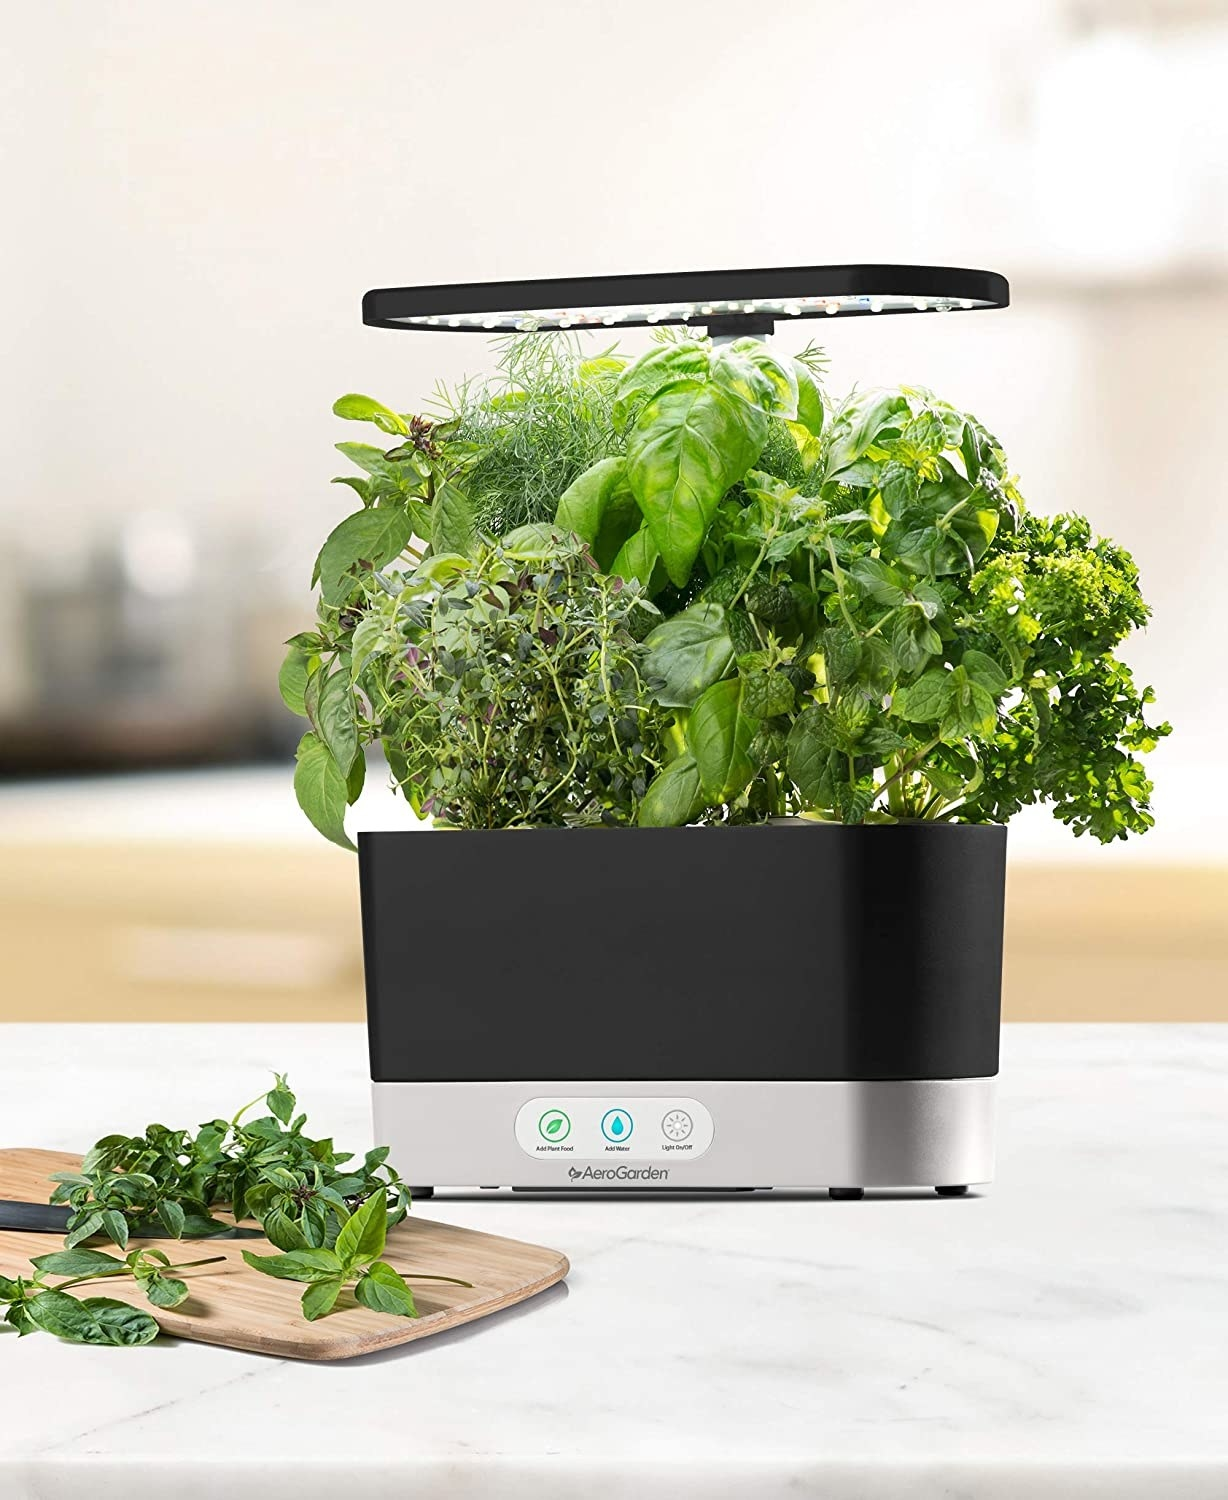 the hydroponic garden with herbs in it